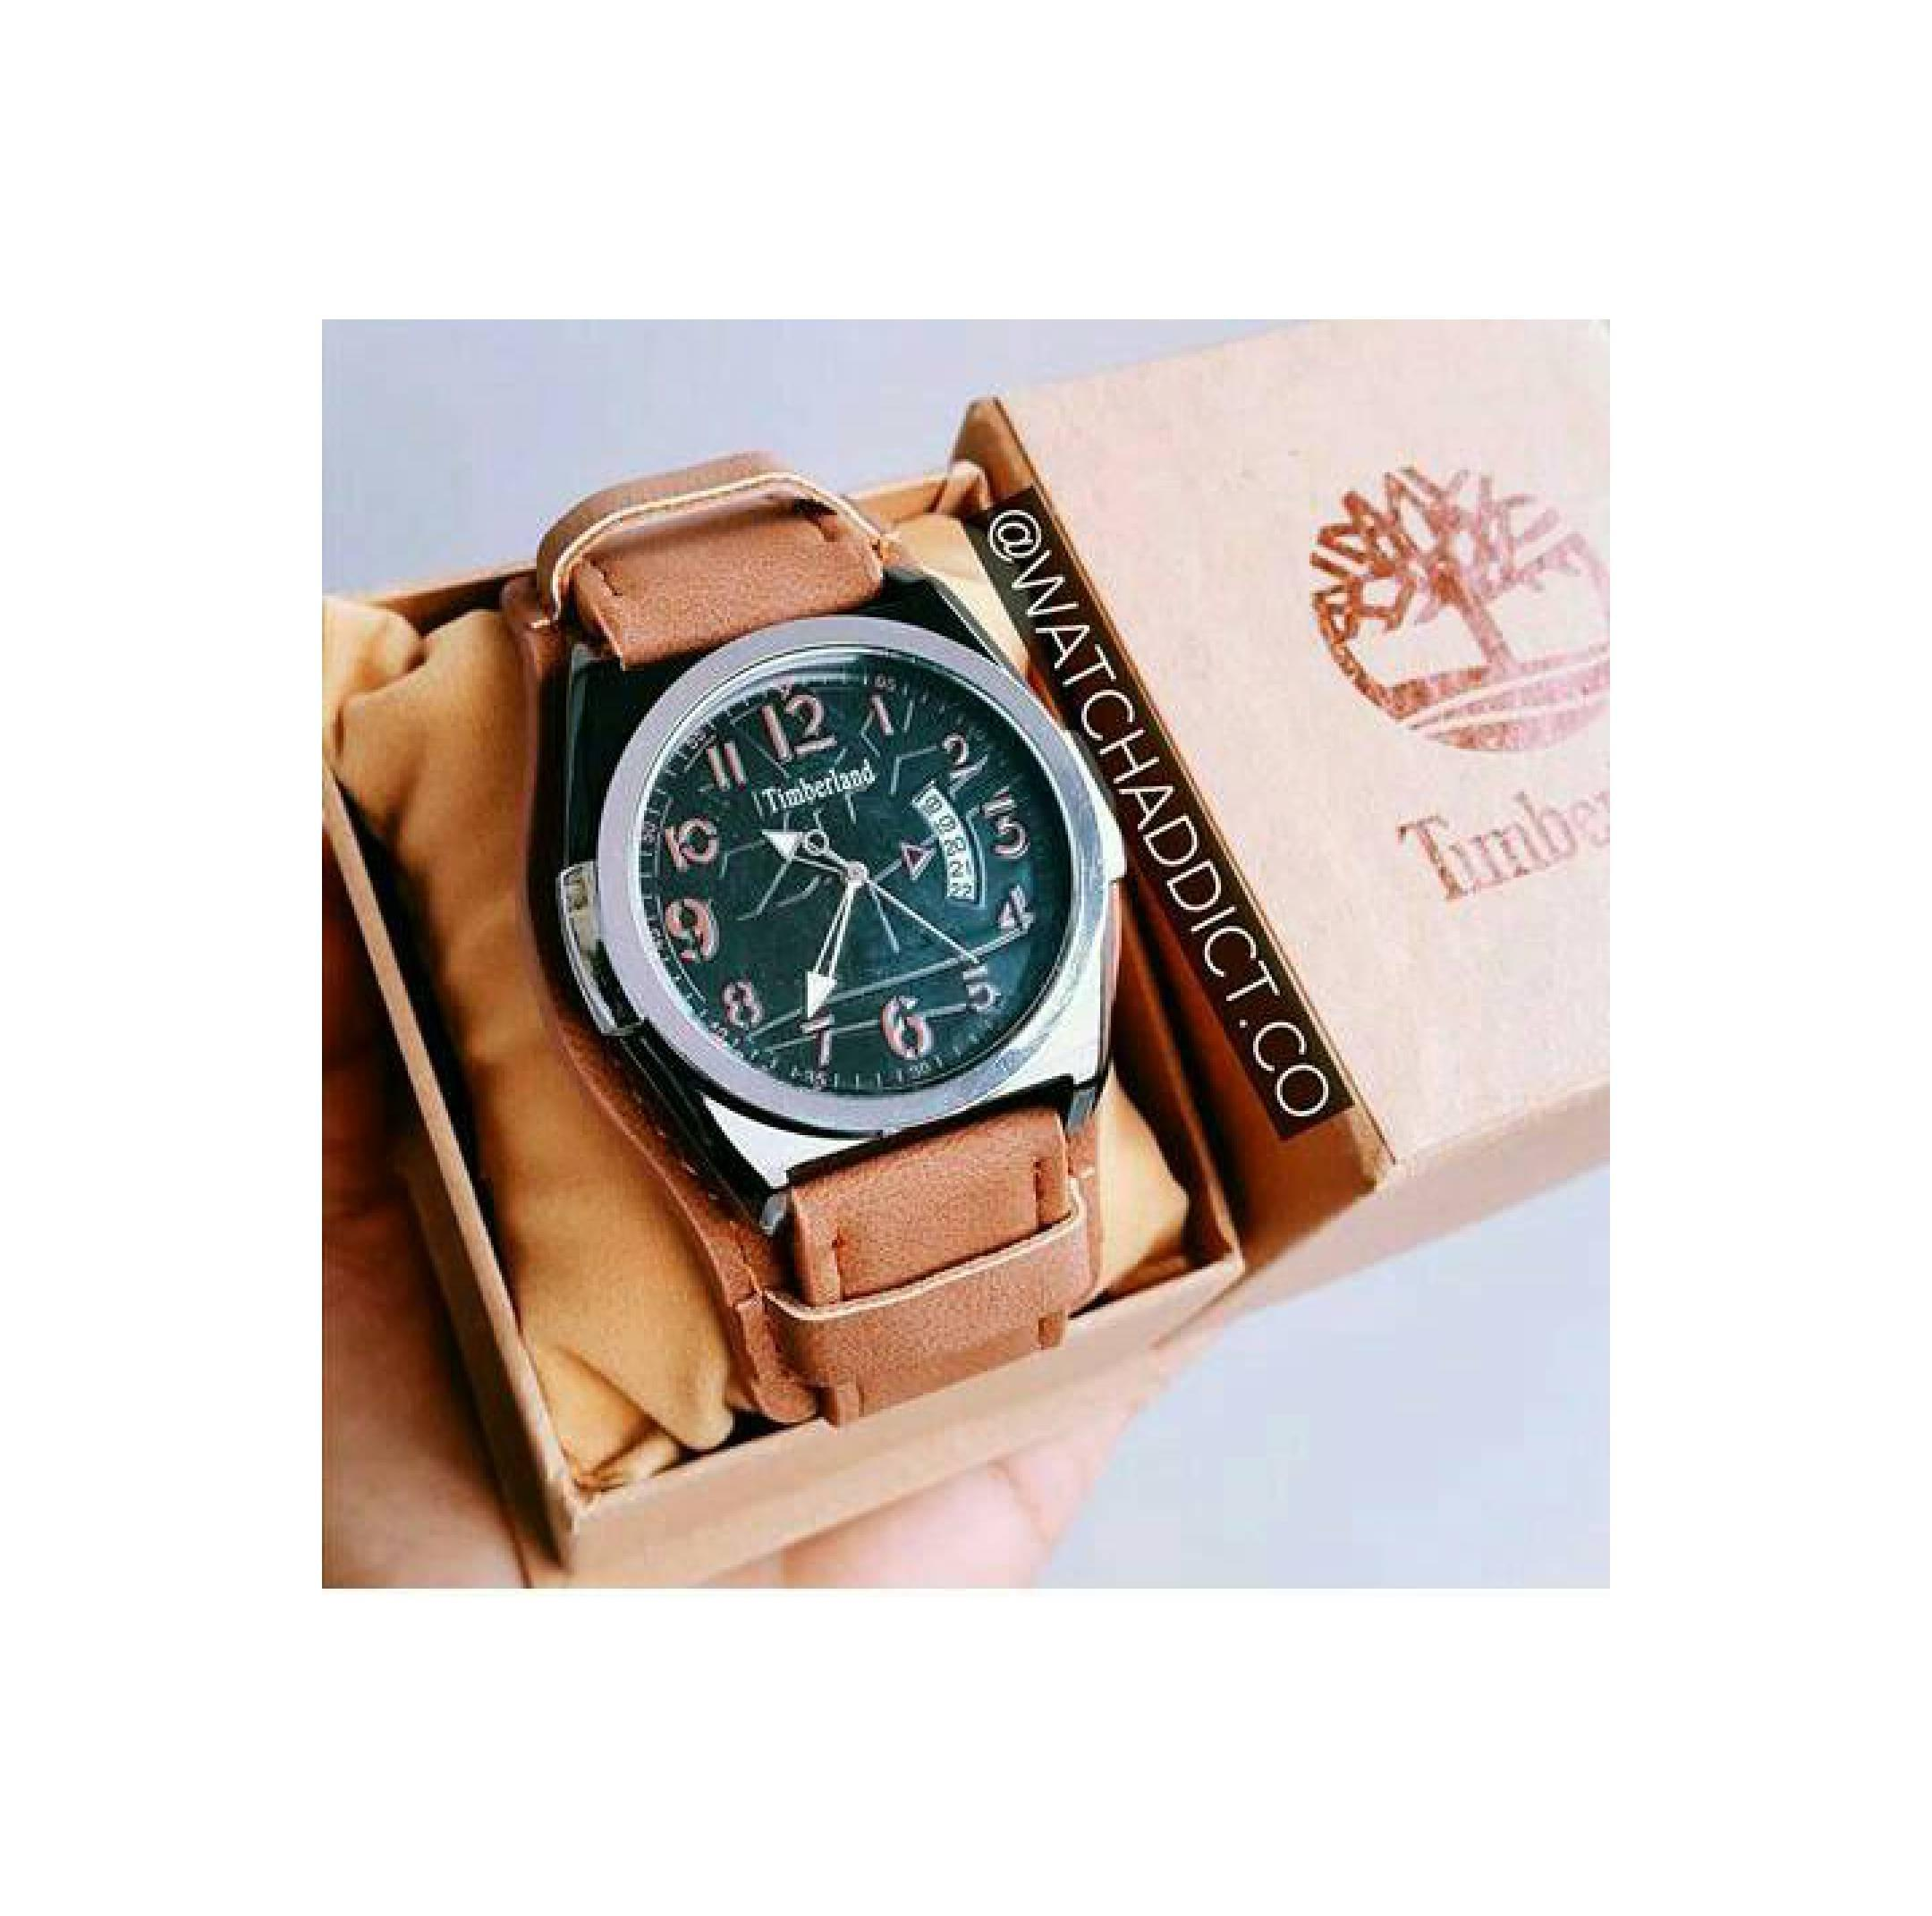 Timberland Jam Tangan Pria Coklat Strap 14297 Original Obral Ume Ultrathin Silicone Jellycase Softcase Casing For